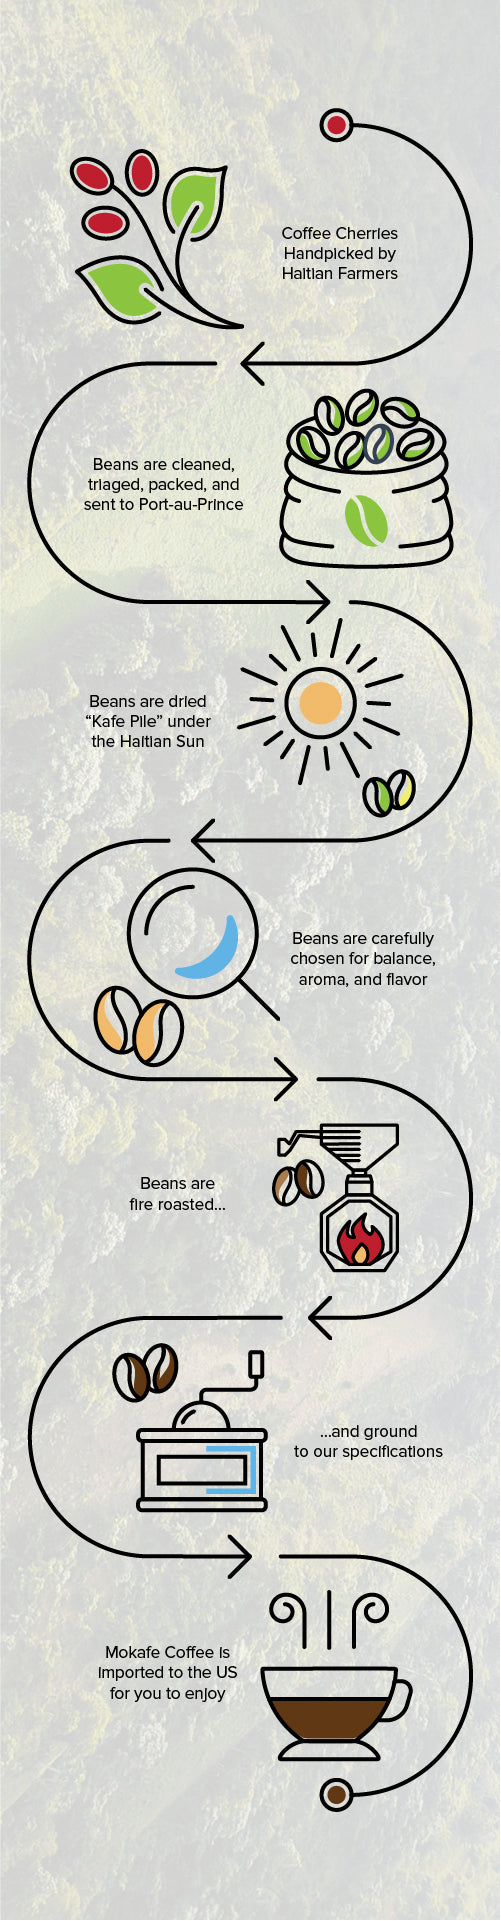 Coffees mokafe coffee our process infographic our process infographic pooptronica Images